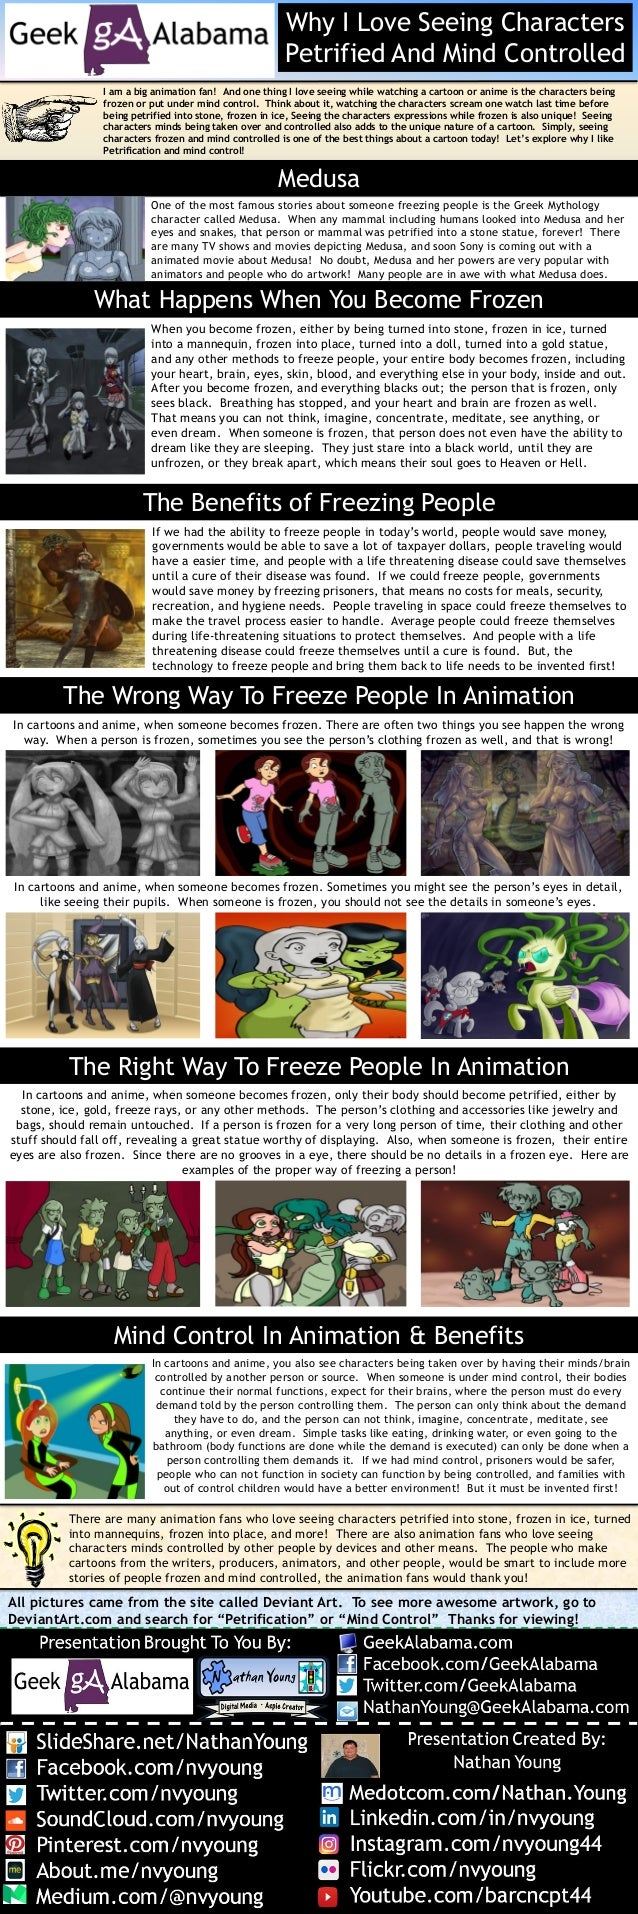 Why I Love Seeing Cartoon Characters Petrified And Mind Controlled